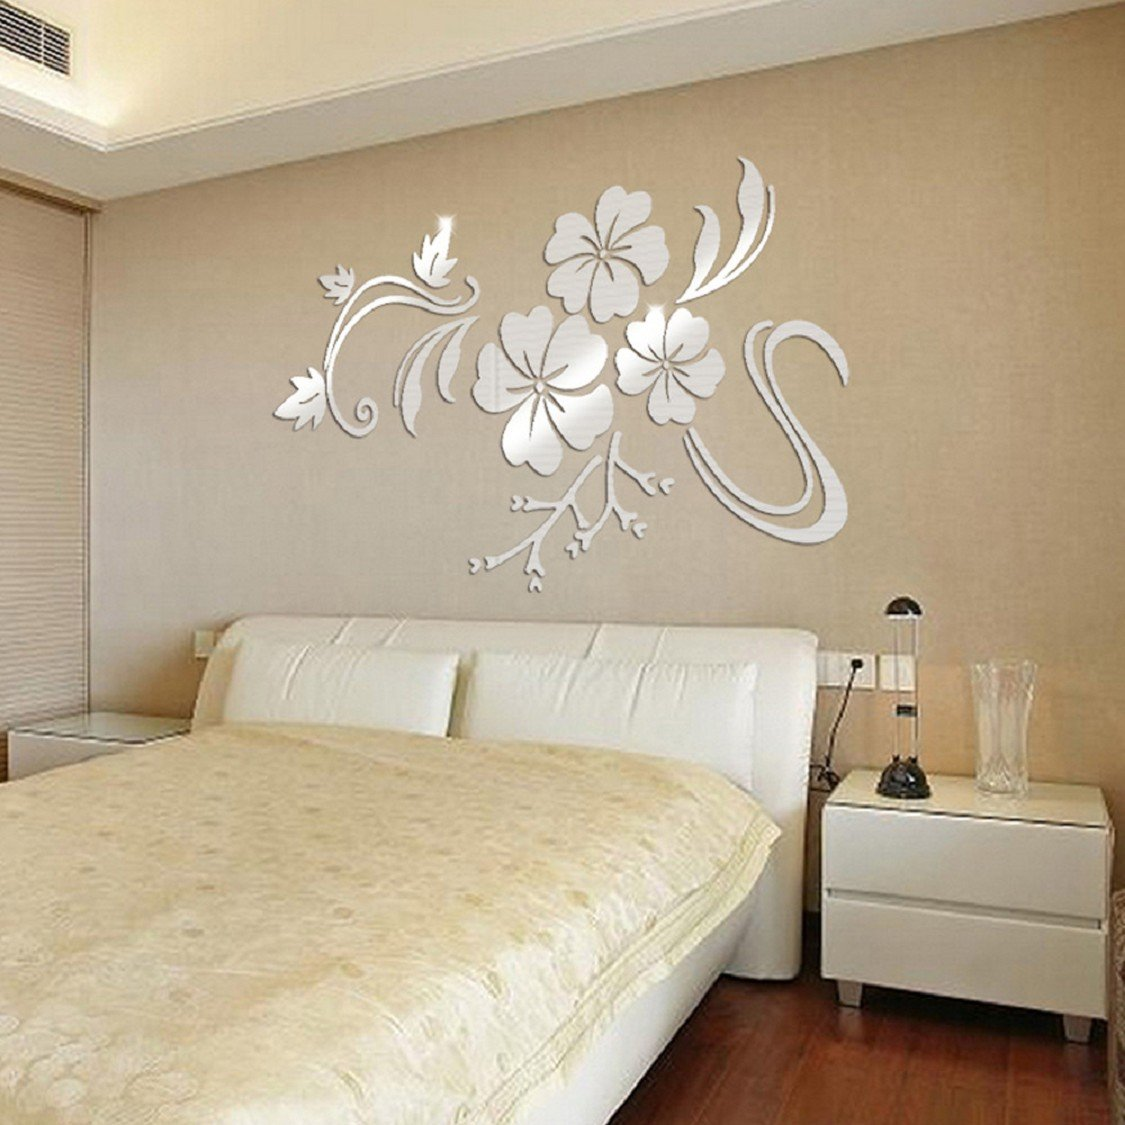 Ikevan Set Acrylic Art D Mirror Flower Wall Stickers DIY Home - Wall stickers art